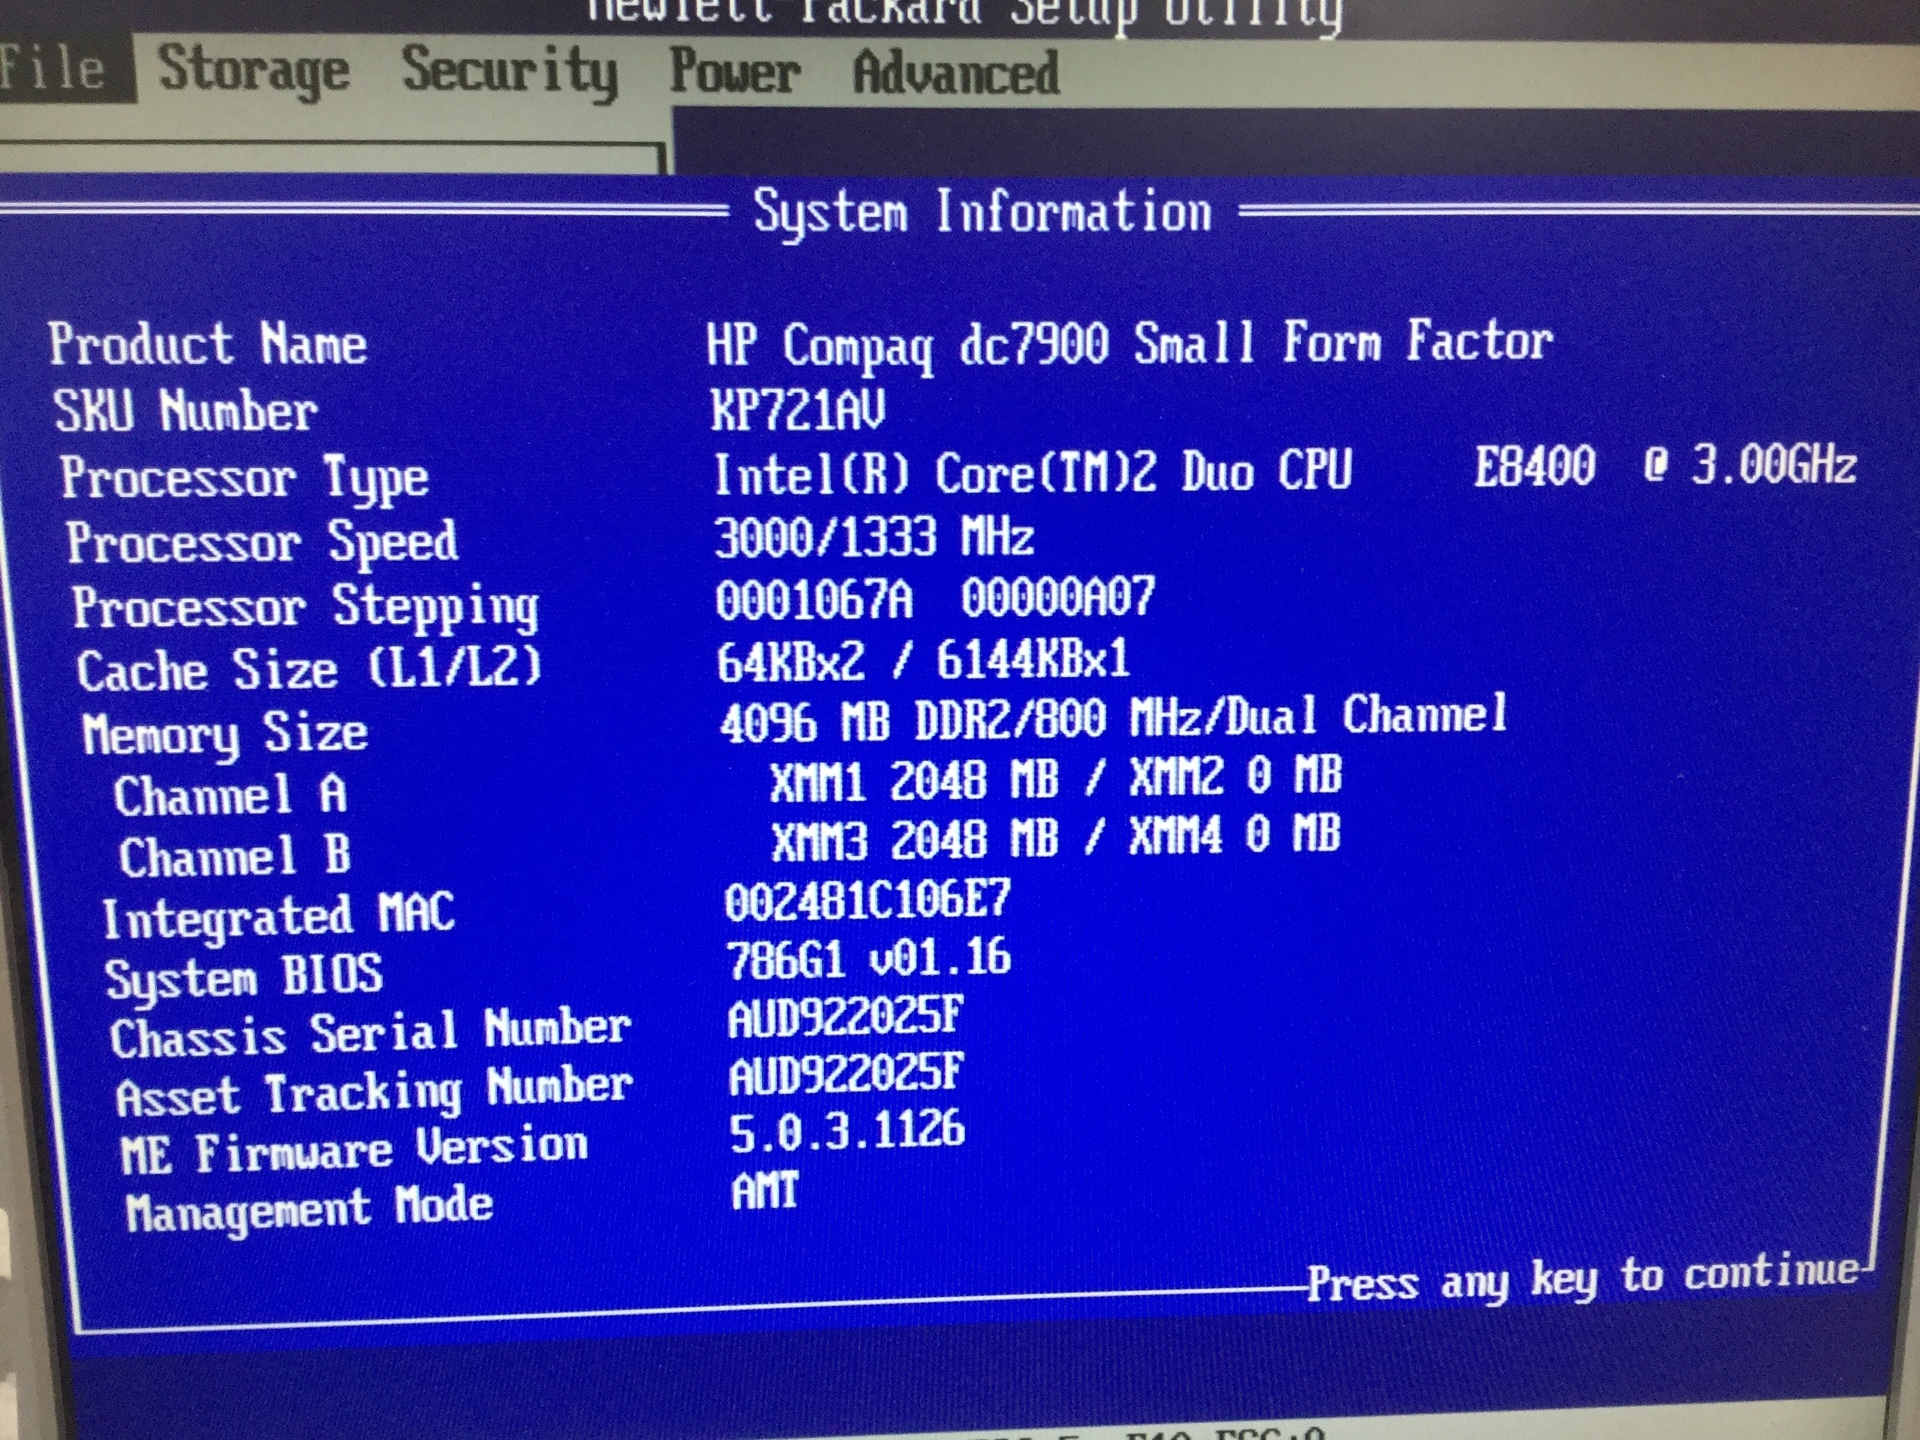 Desktop PC, HP Compaq dc7900 SFF, Appears to Function